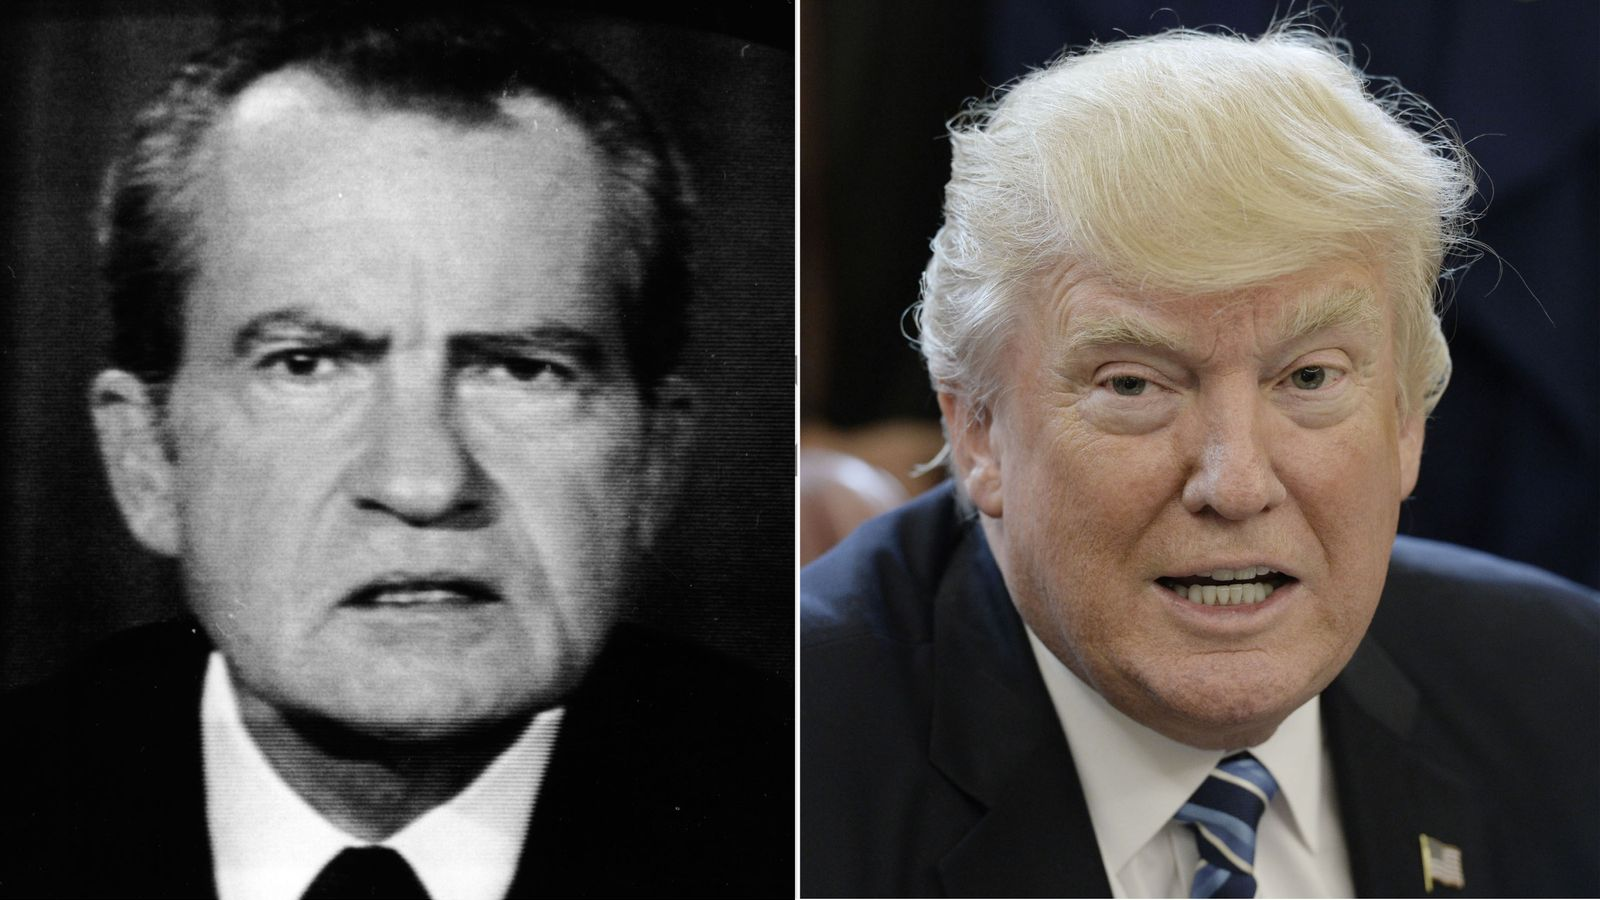 Richard Nixon (L) and Donald Trump